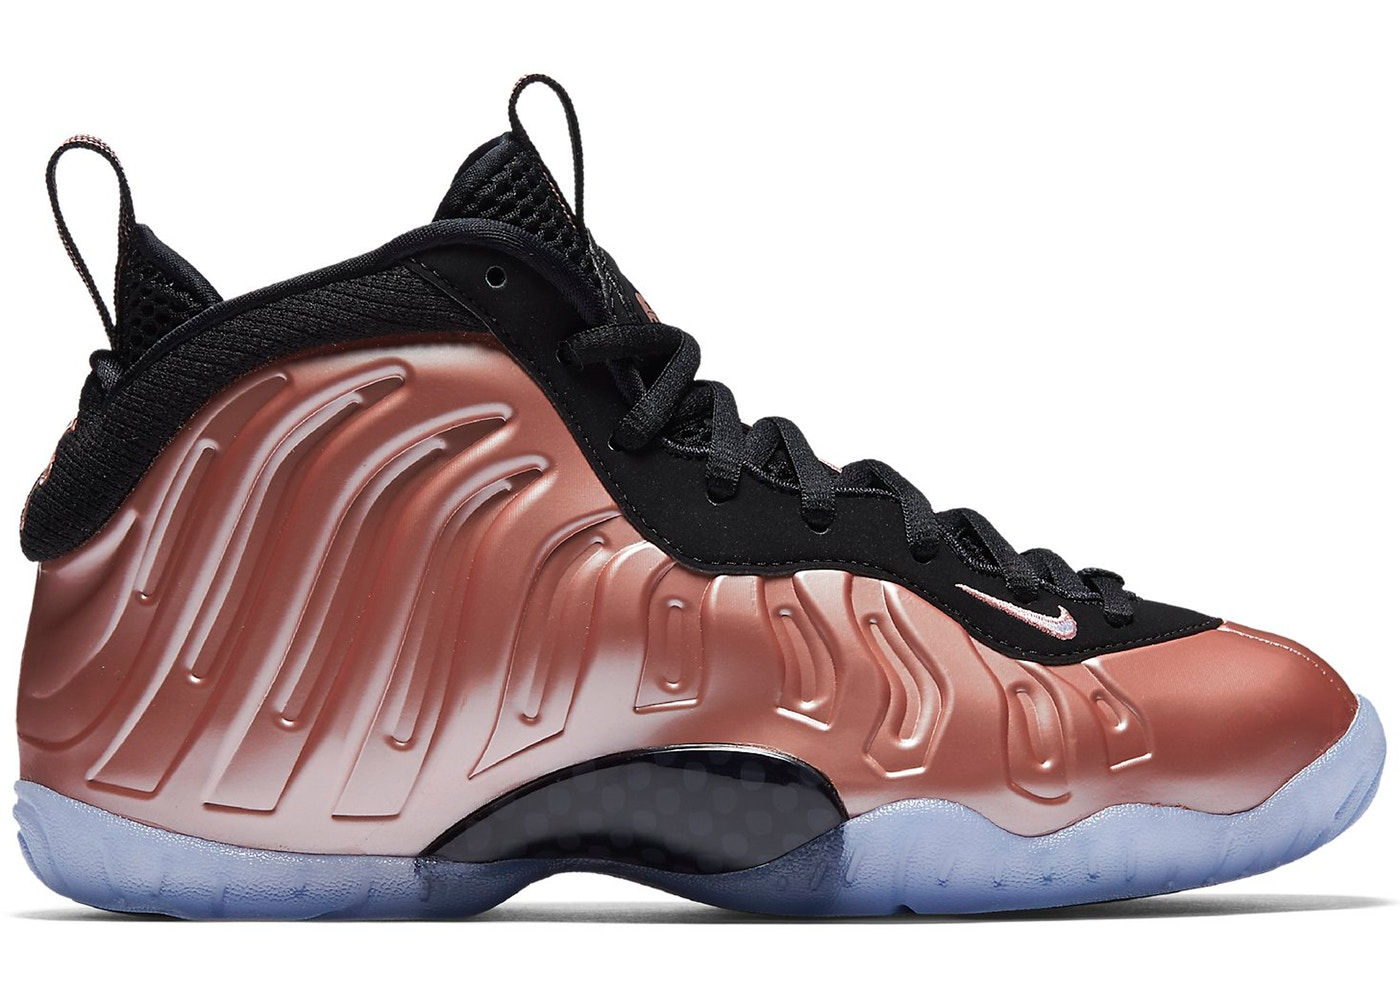 bad5f56d108b0 Air Foamposite One Rust Pink (GS) - 644791-601